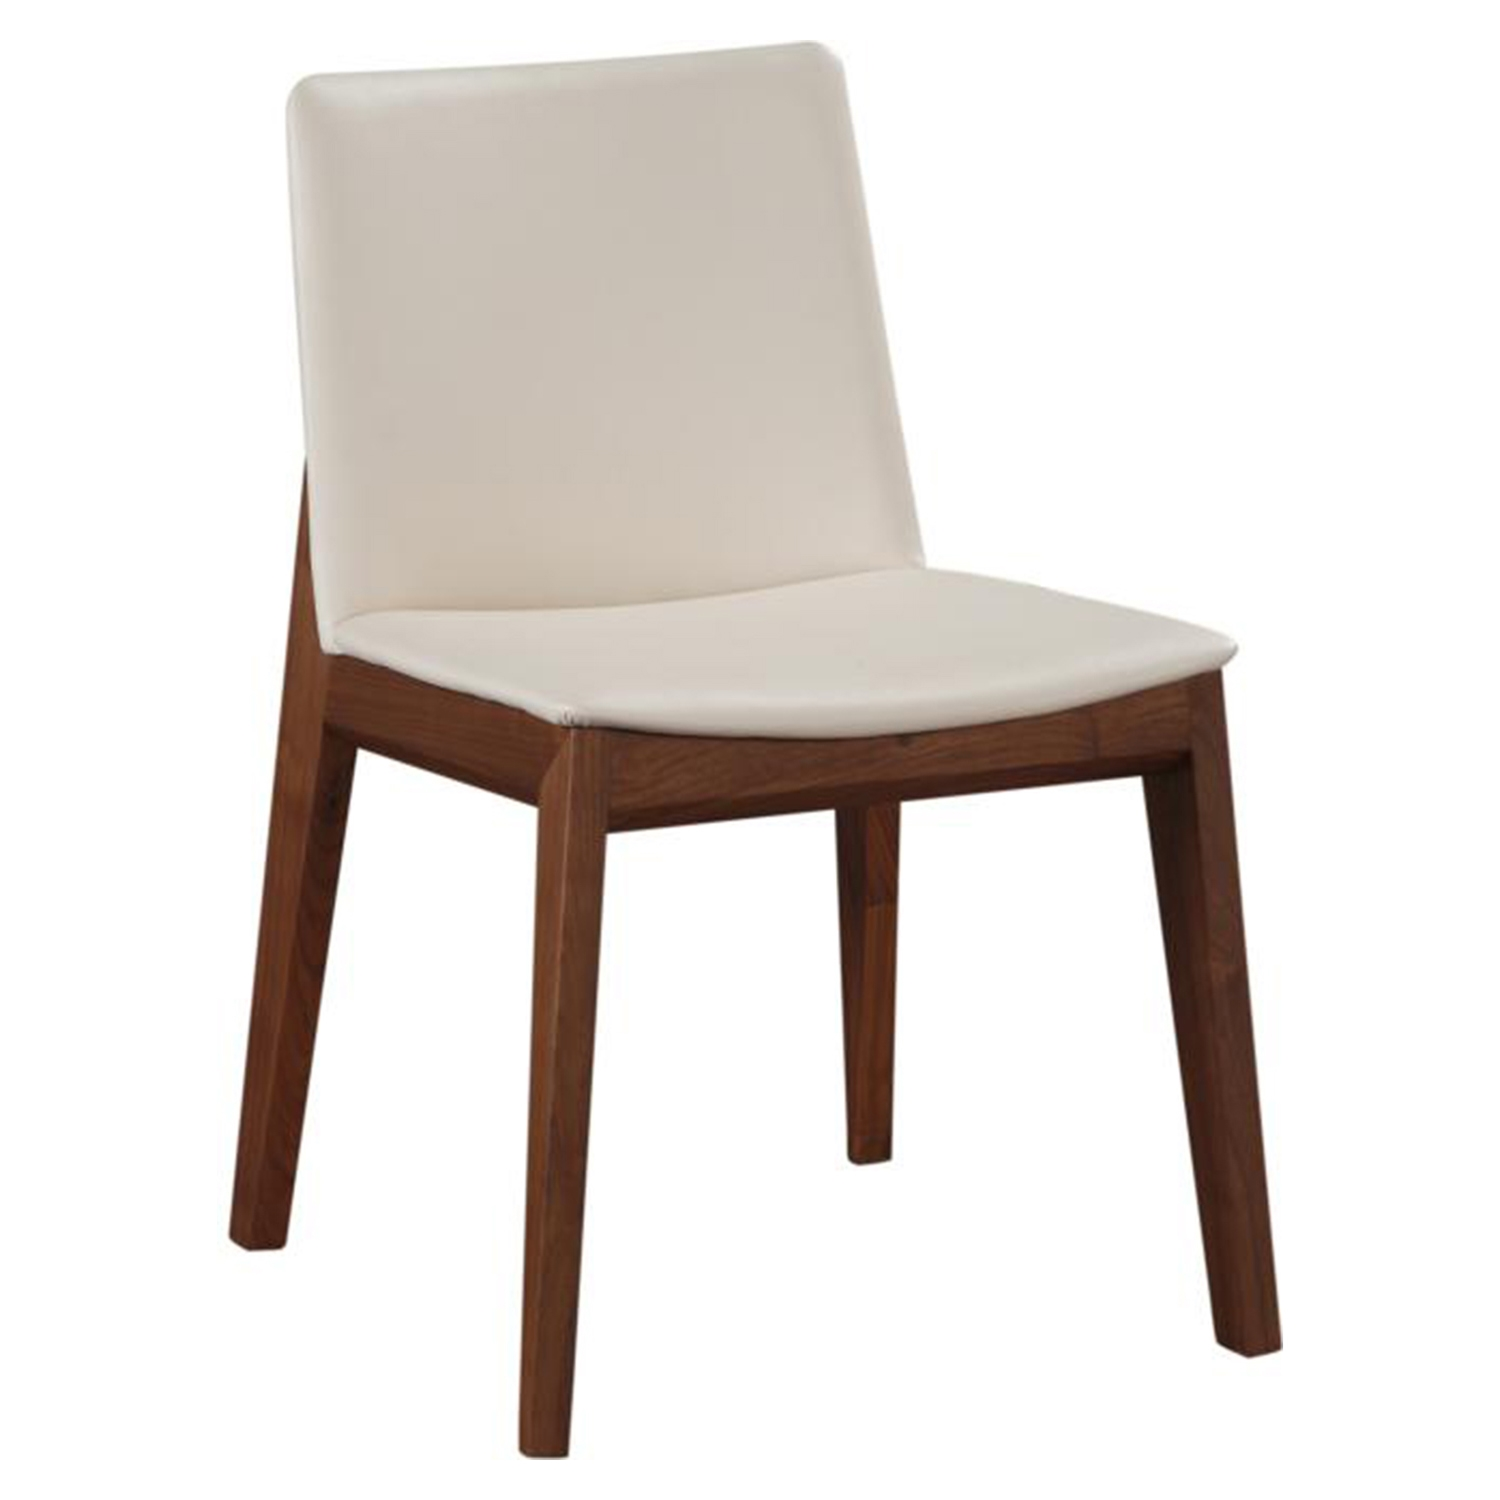 Deco Dining Chair - White (Set of 2) - MOES-BC-1016-05